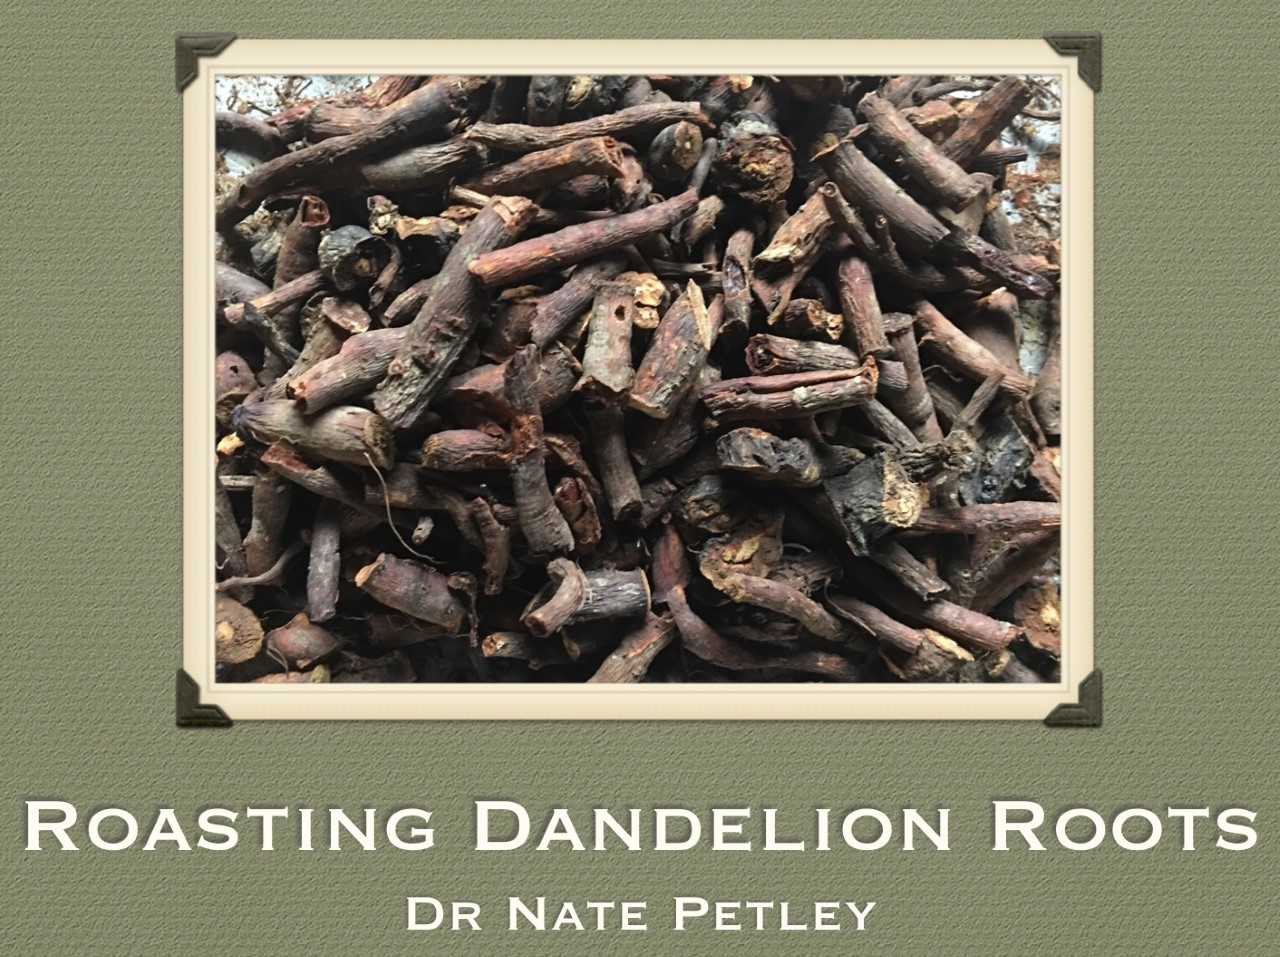 Roasted Dandelion Root Tea (Part 2)